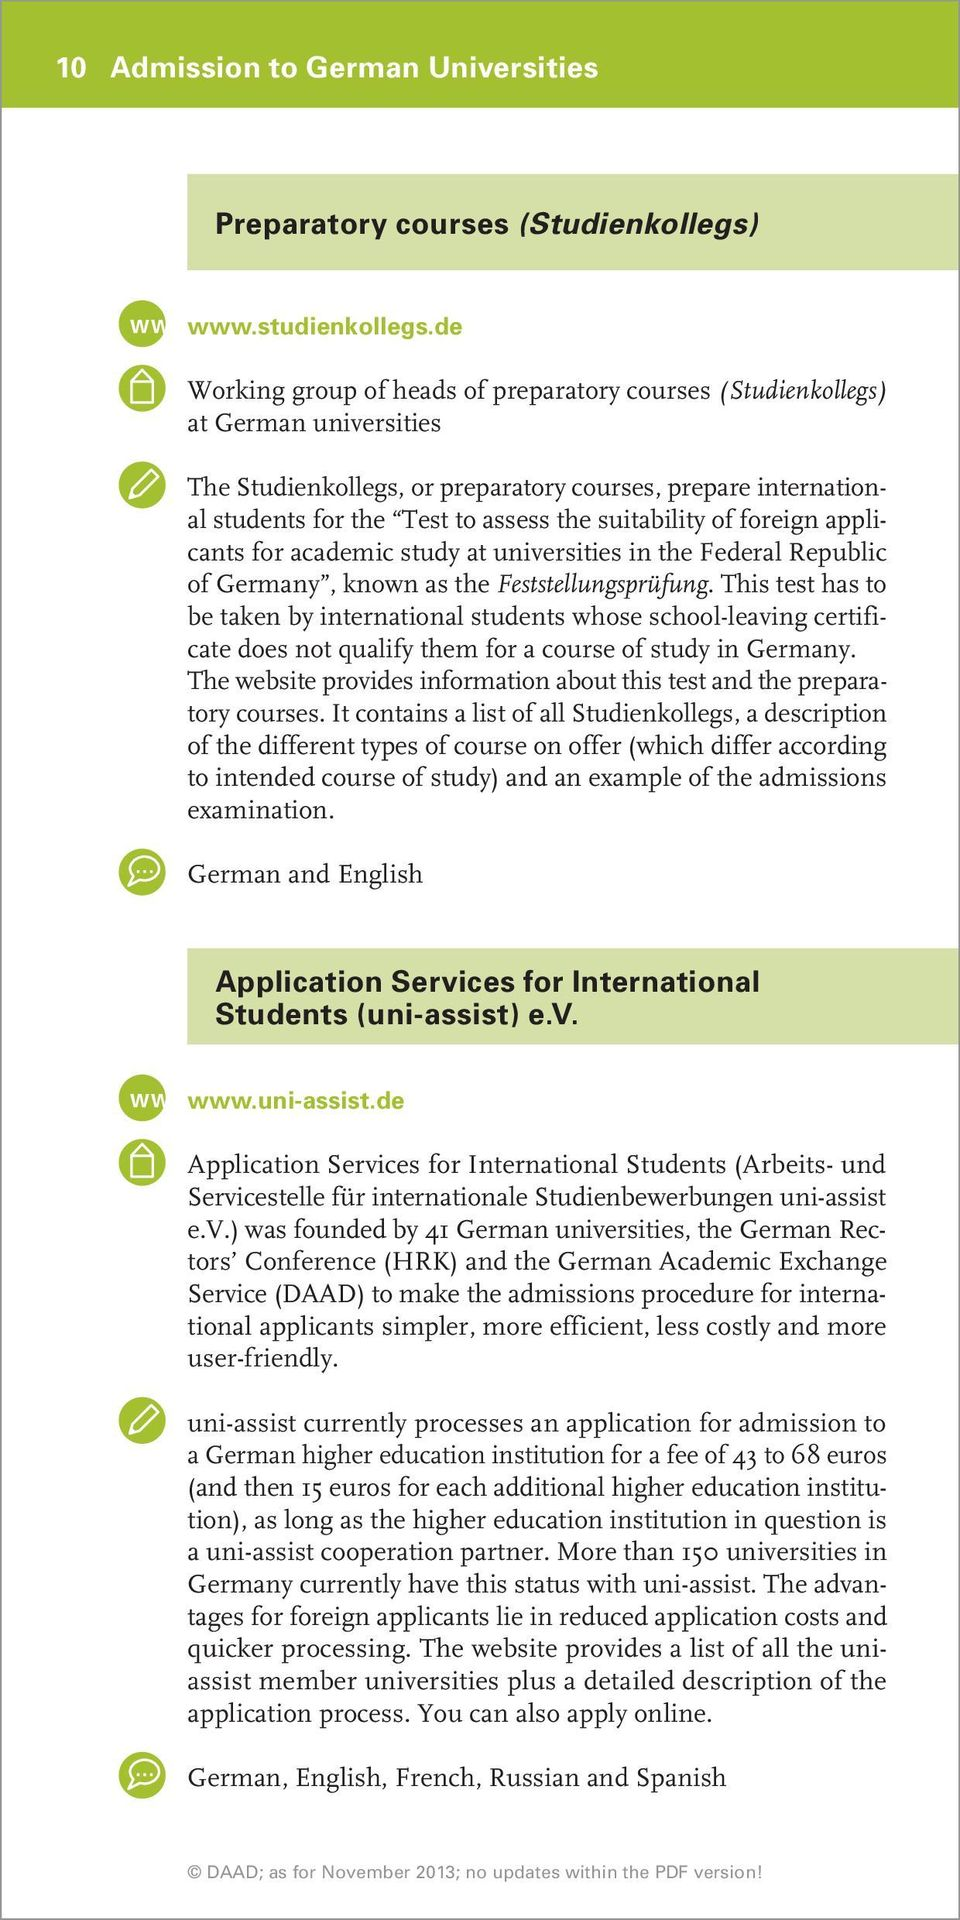 suitability of foreign applicants for academic study at universities in the Federal Republic of Germany, known as the Feststellungsprüfung.